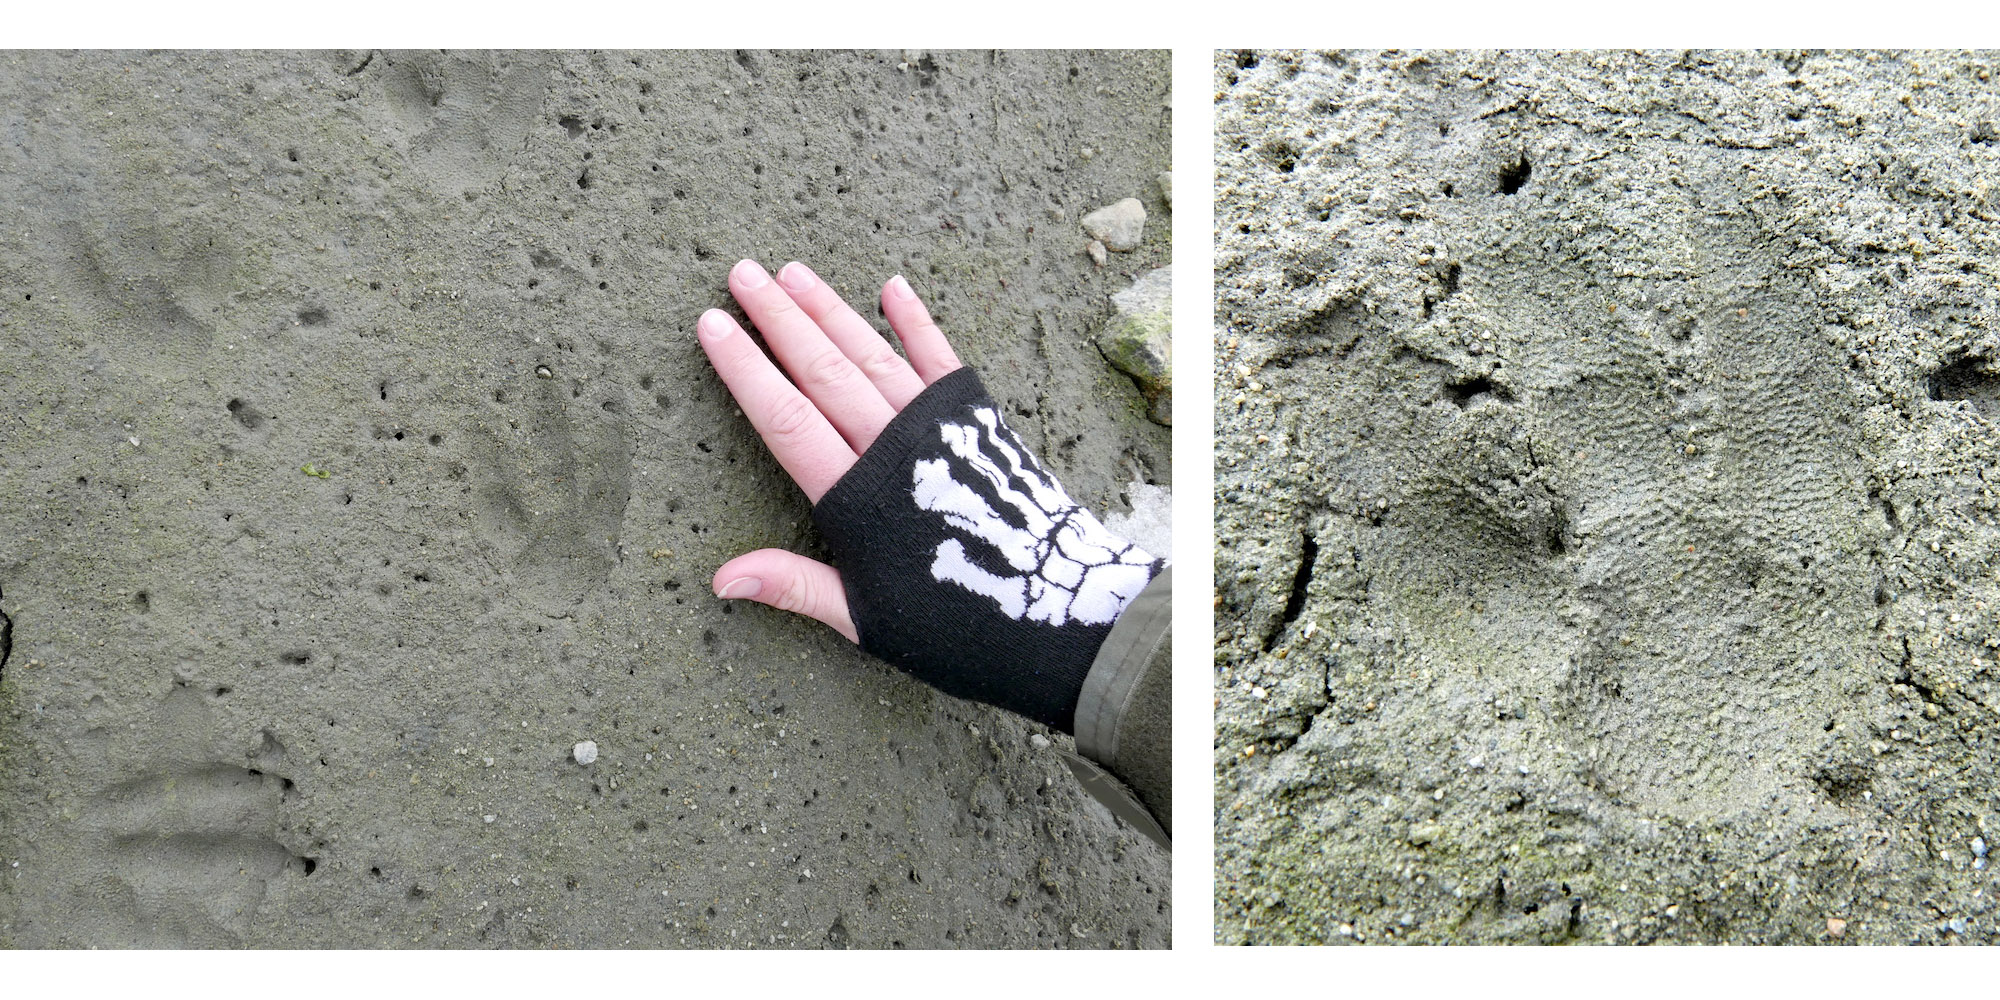 Penguin footprint in sediment